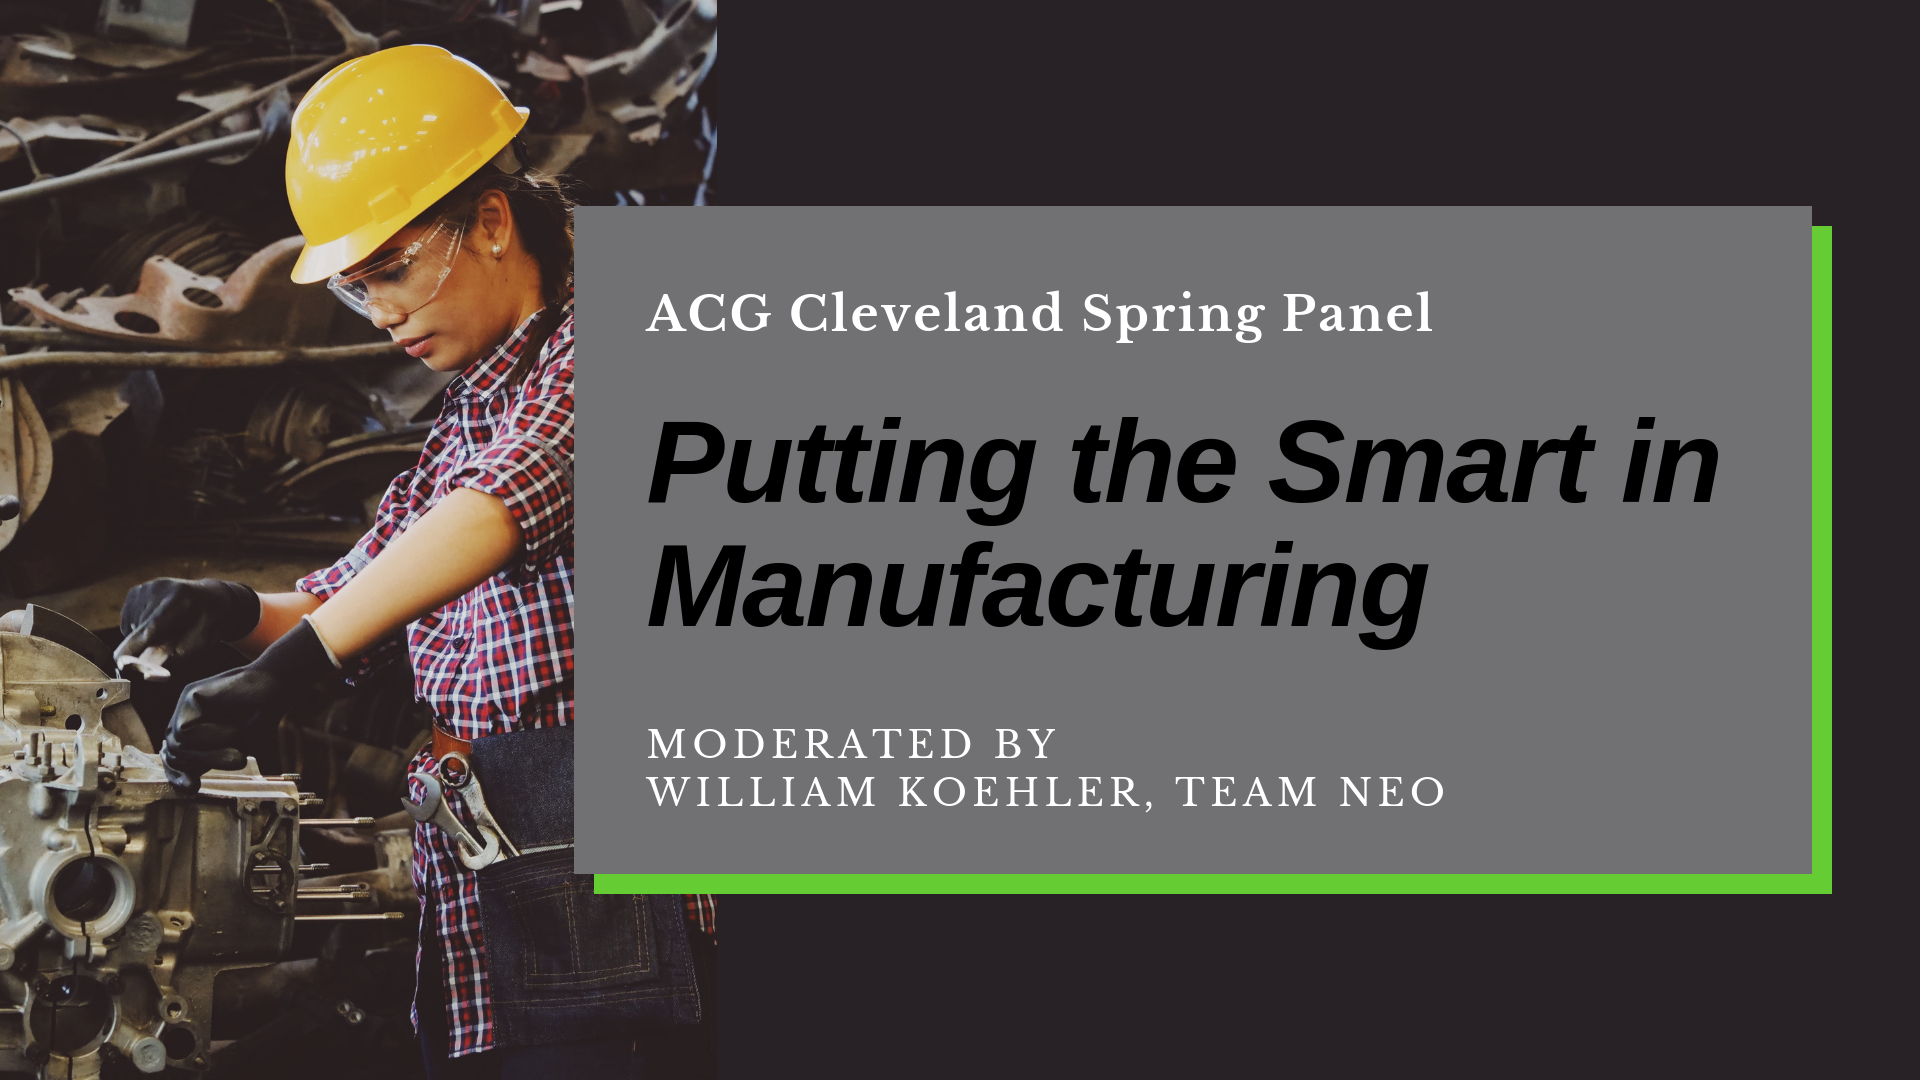 Putting the Smart in Manufacturing